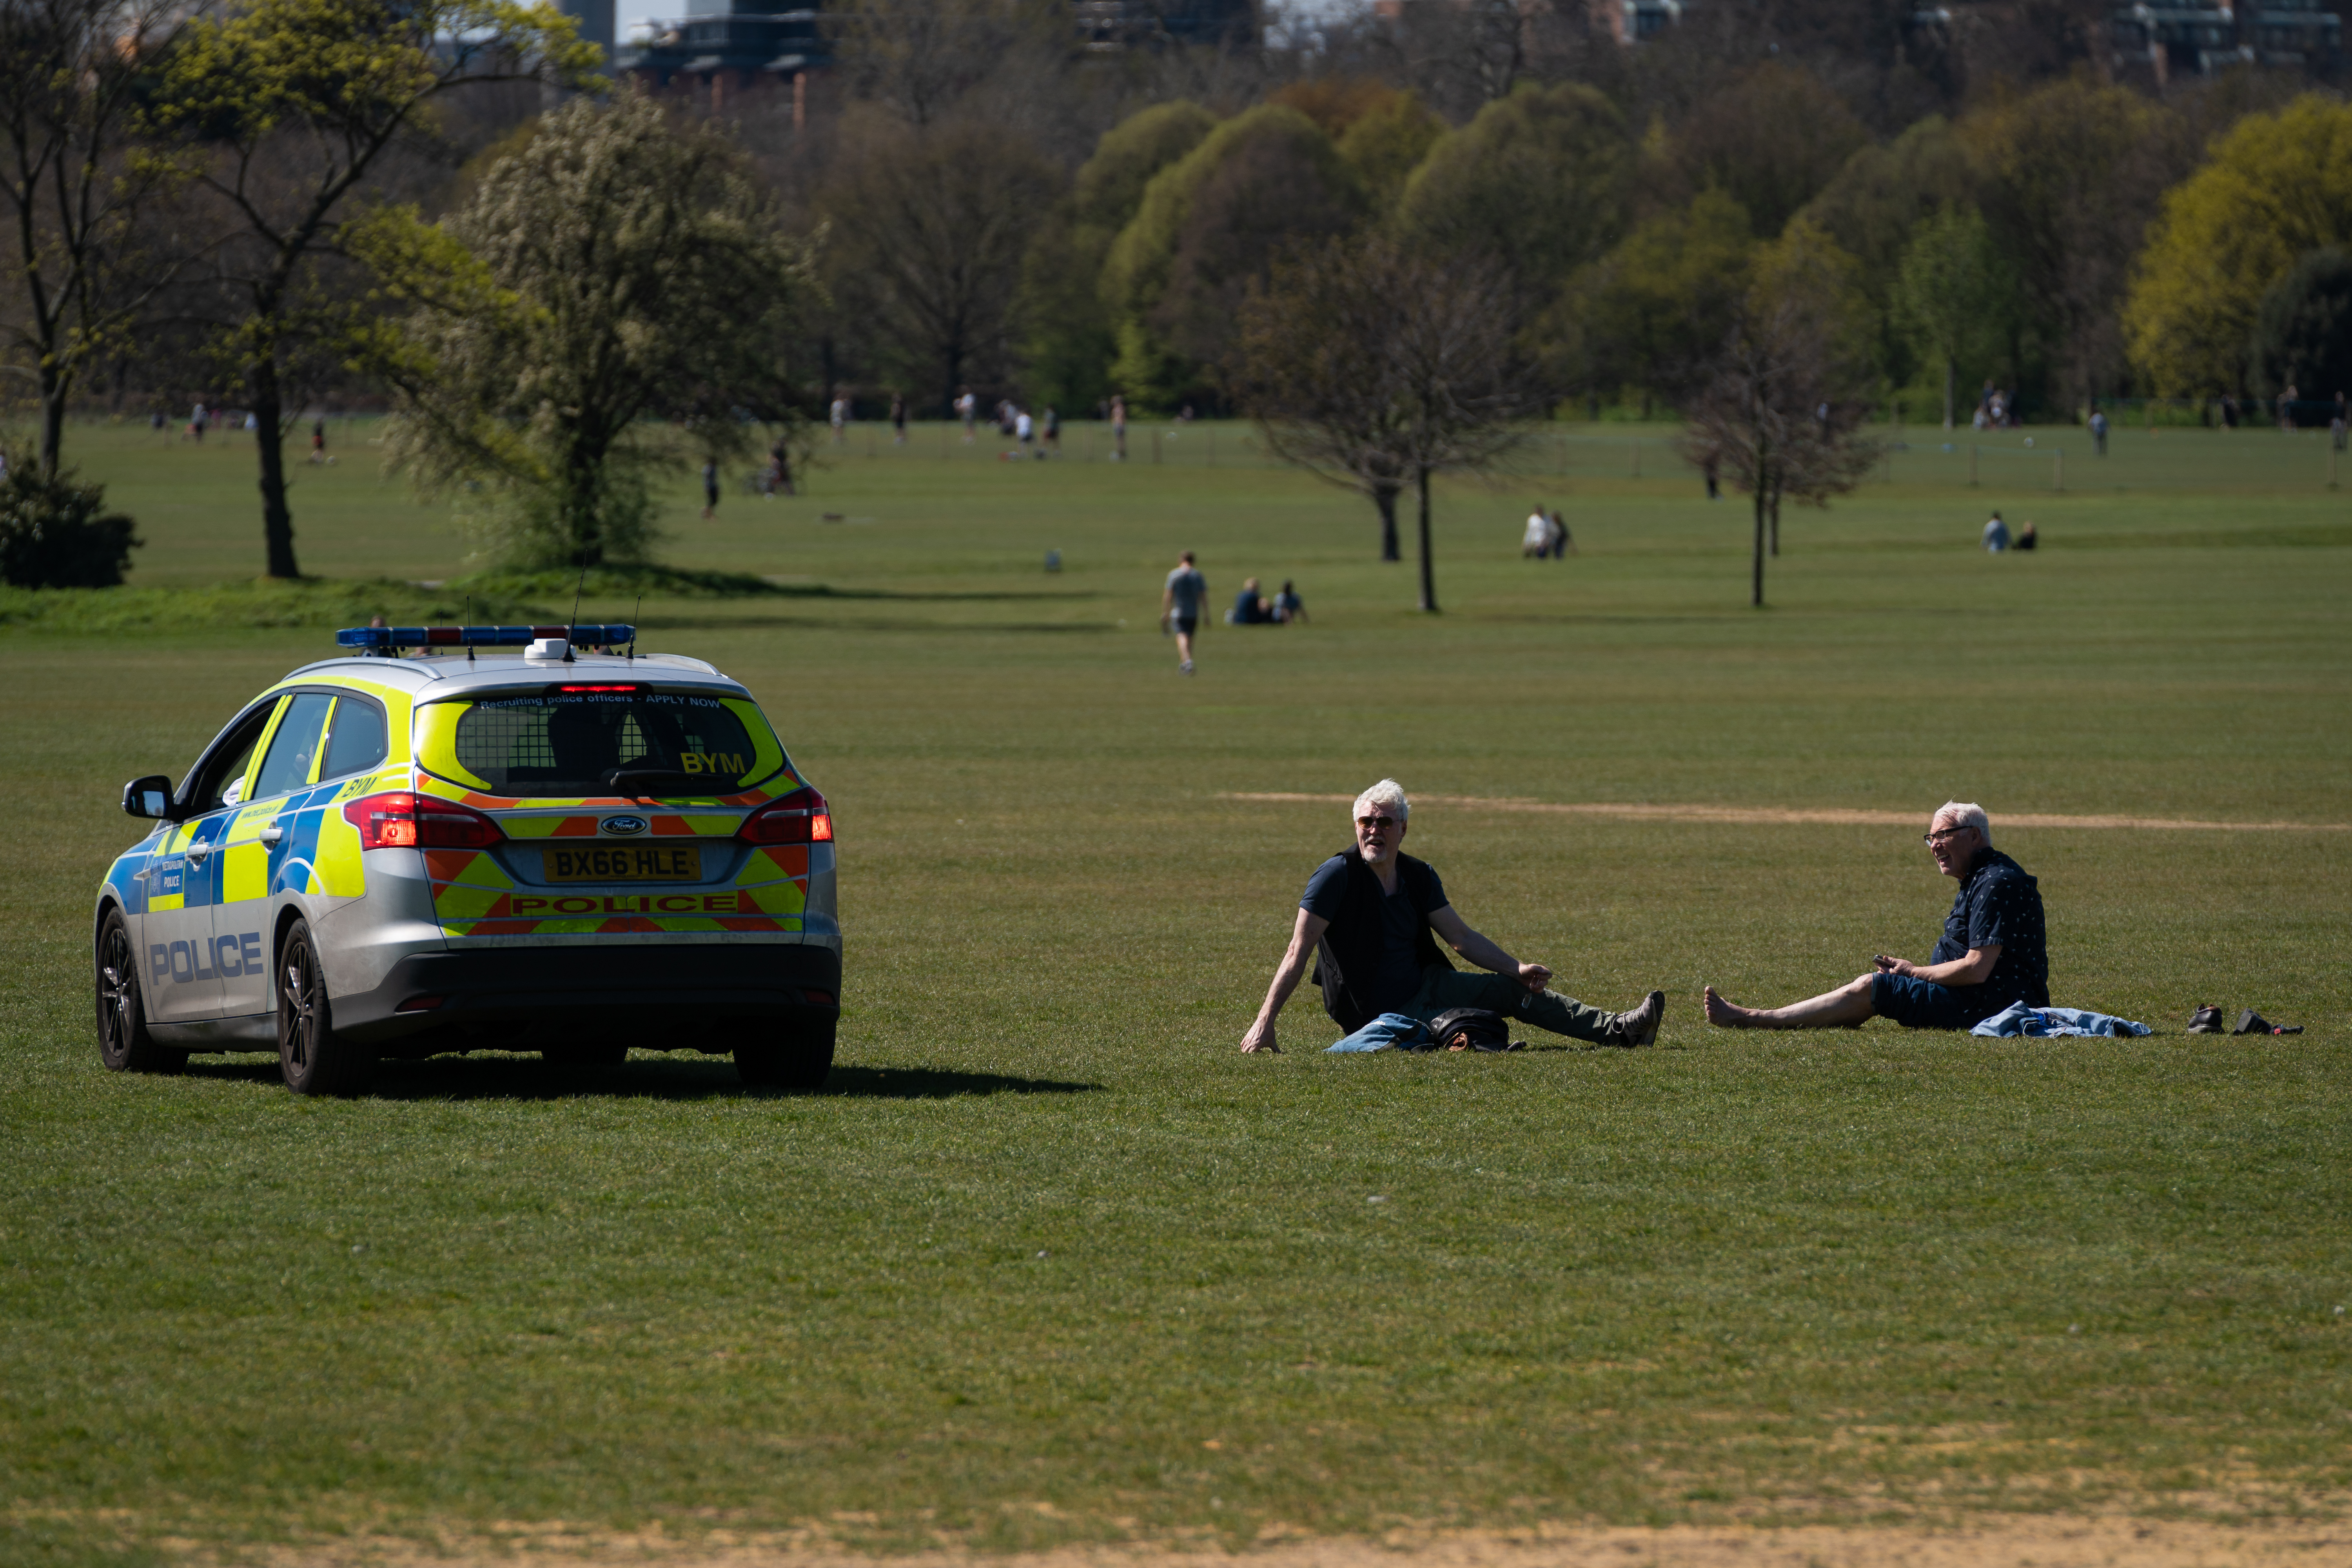 Police move on sunbathers in Regents Park, London, as the UK continues in lockdown to help curb the spread of the coronavirus.